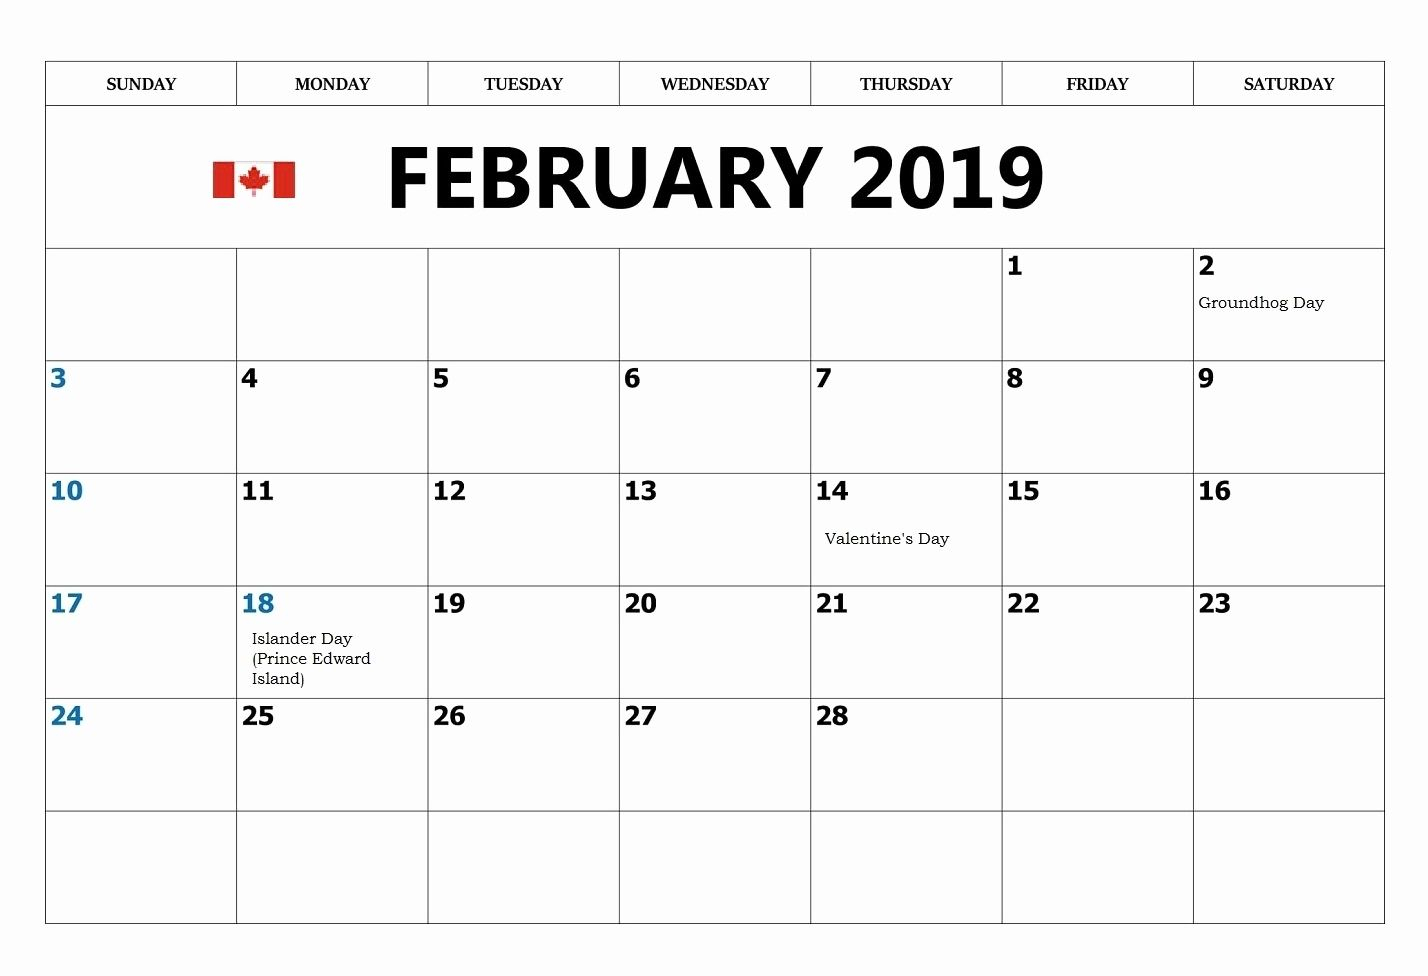 February 2019 Calendar Canada With Federal Holidays | 2019 intended for Printable Canadian Calendar With Holidays